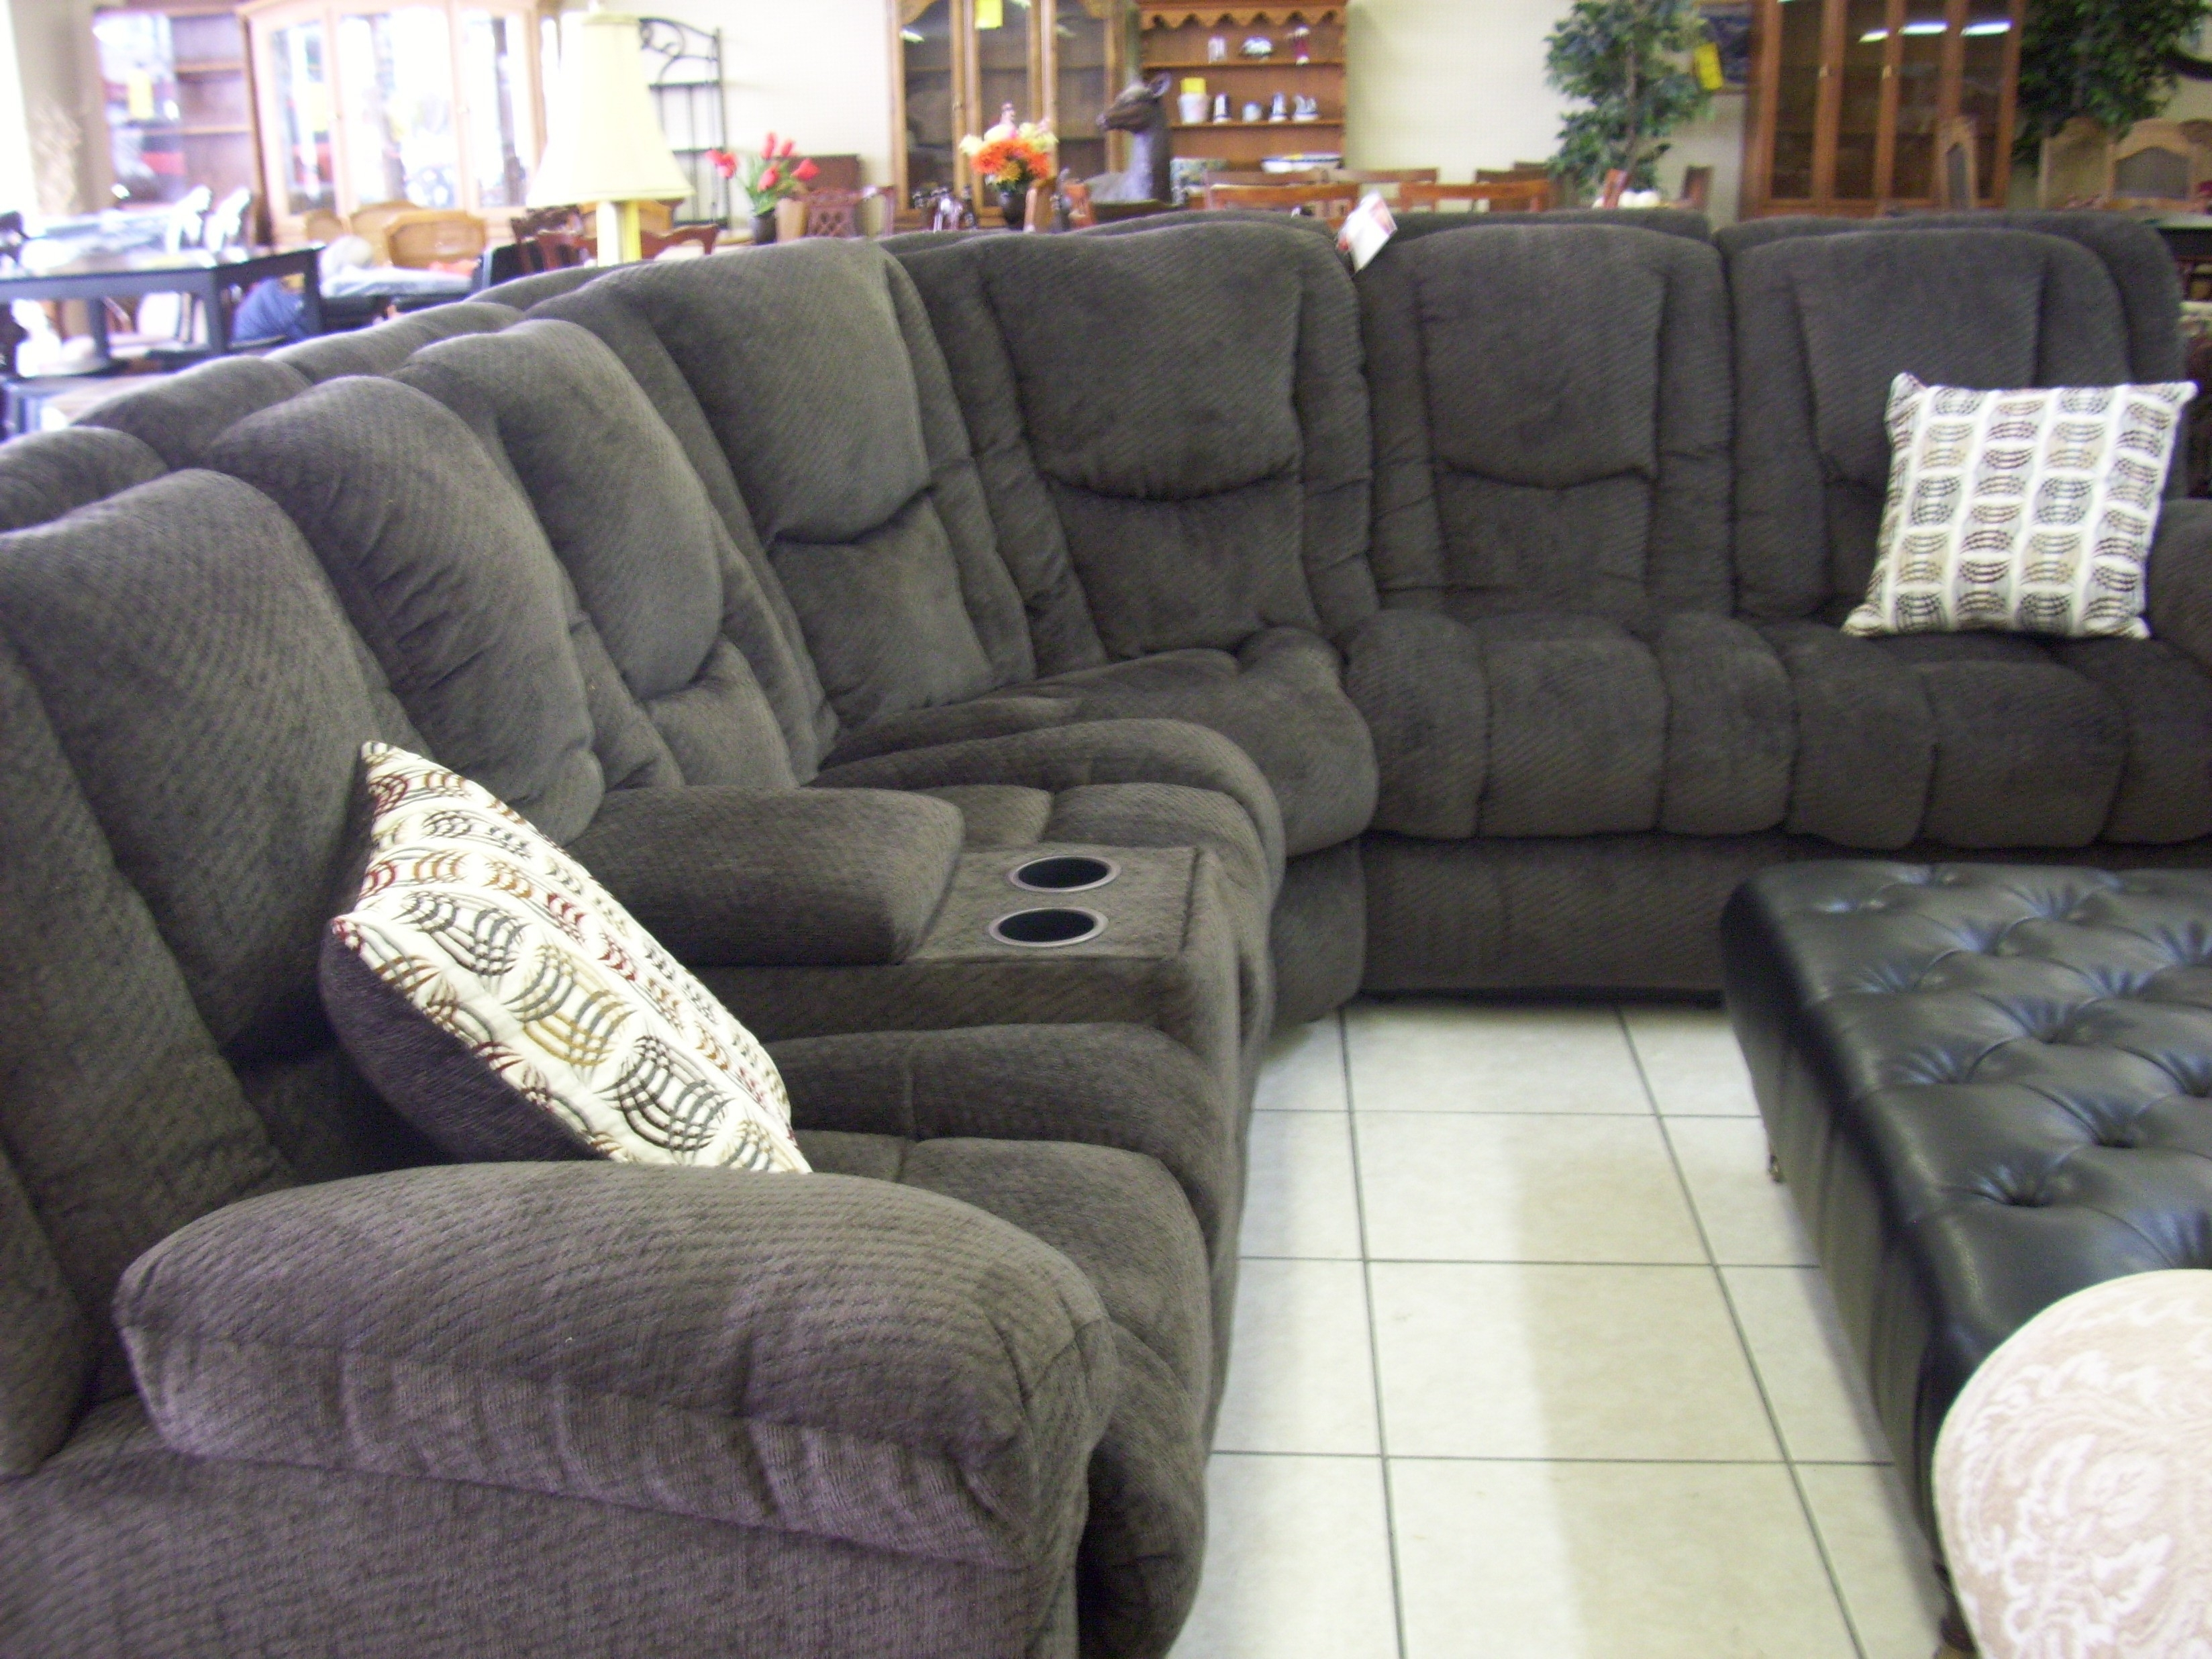 Best Of Craigslist Sectional Sofa – Buildsimplehome Intended For Best And Newest Sectional Sofas At Craigslist (View 12 of 15)